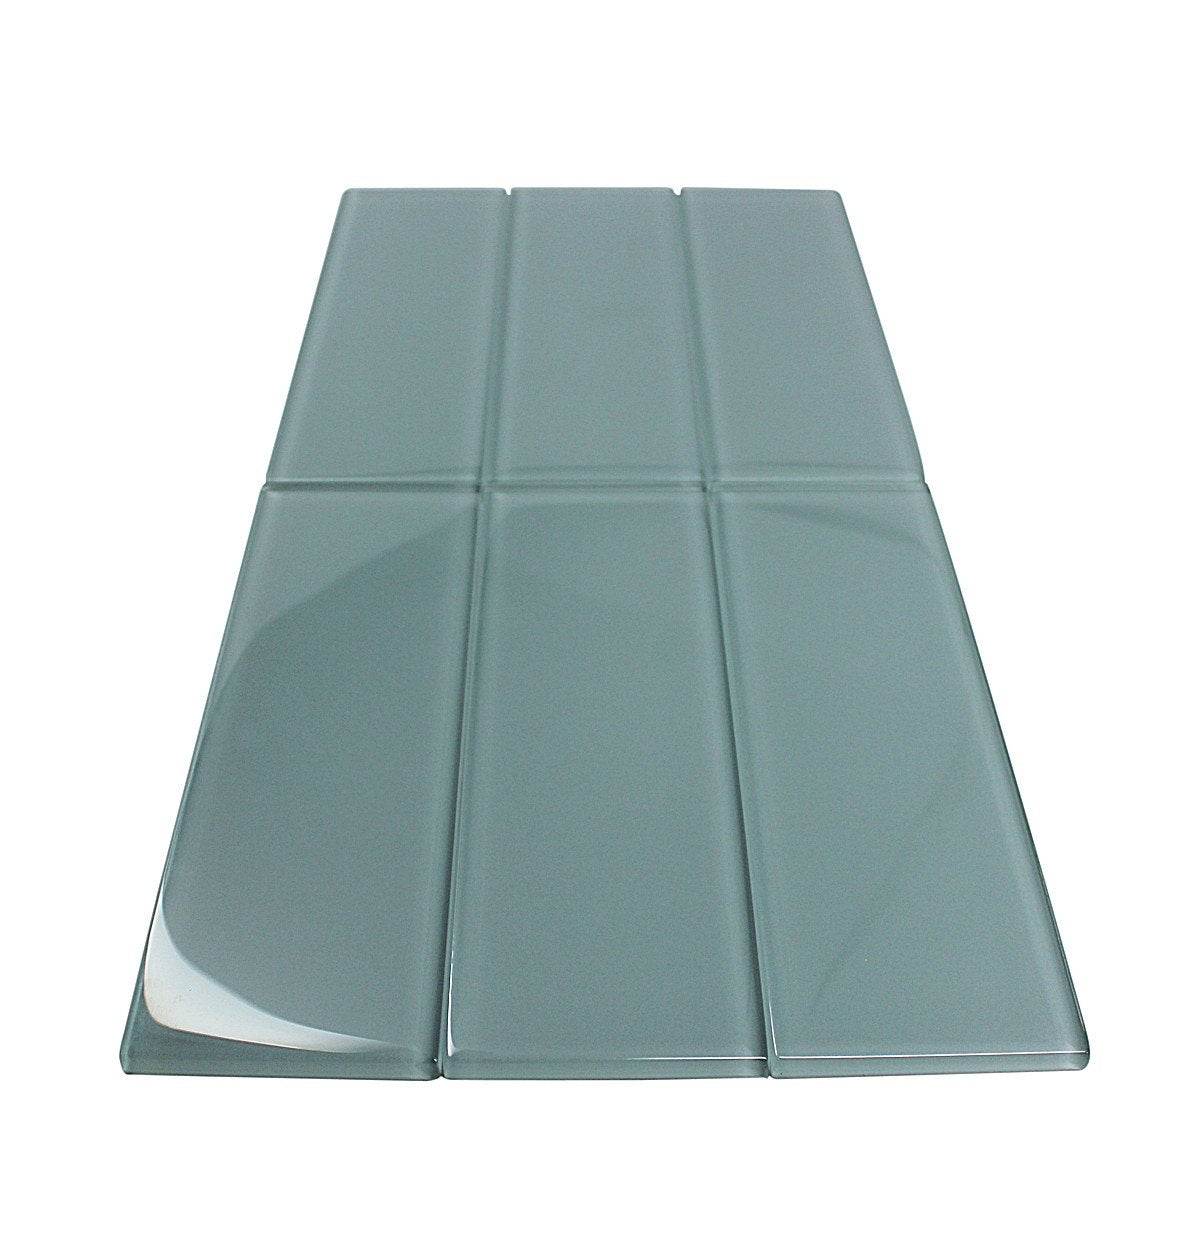 3x9 GRAY GLASS SUBWAY TILES